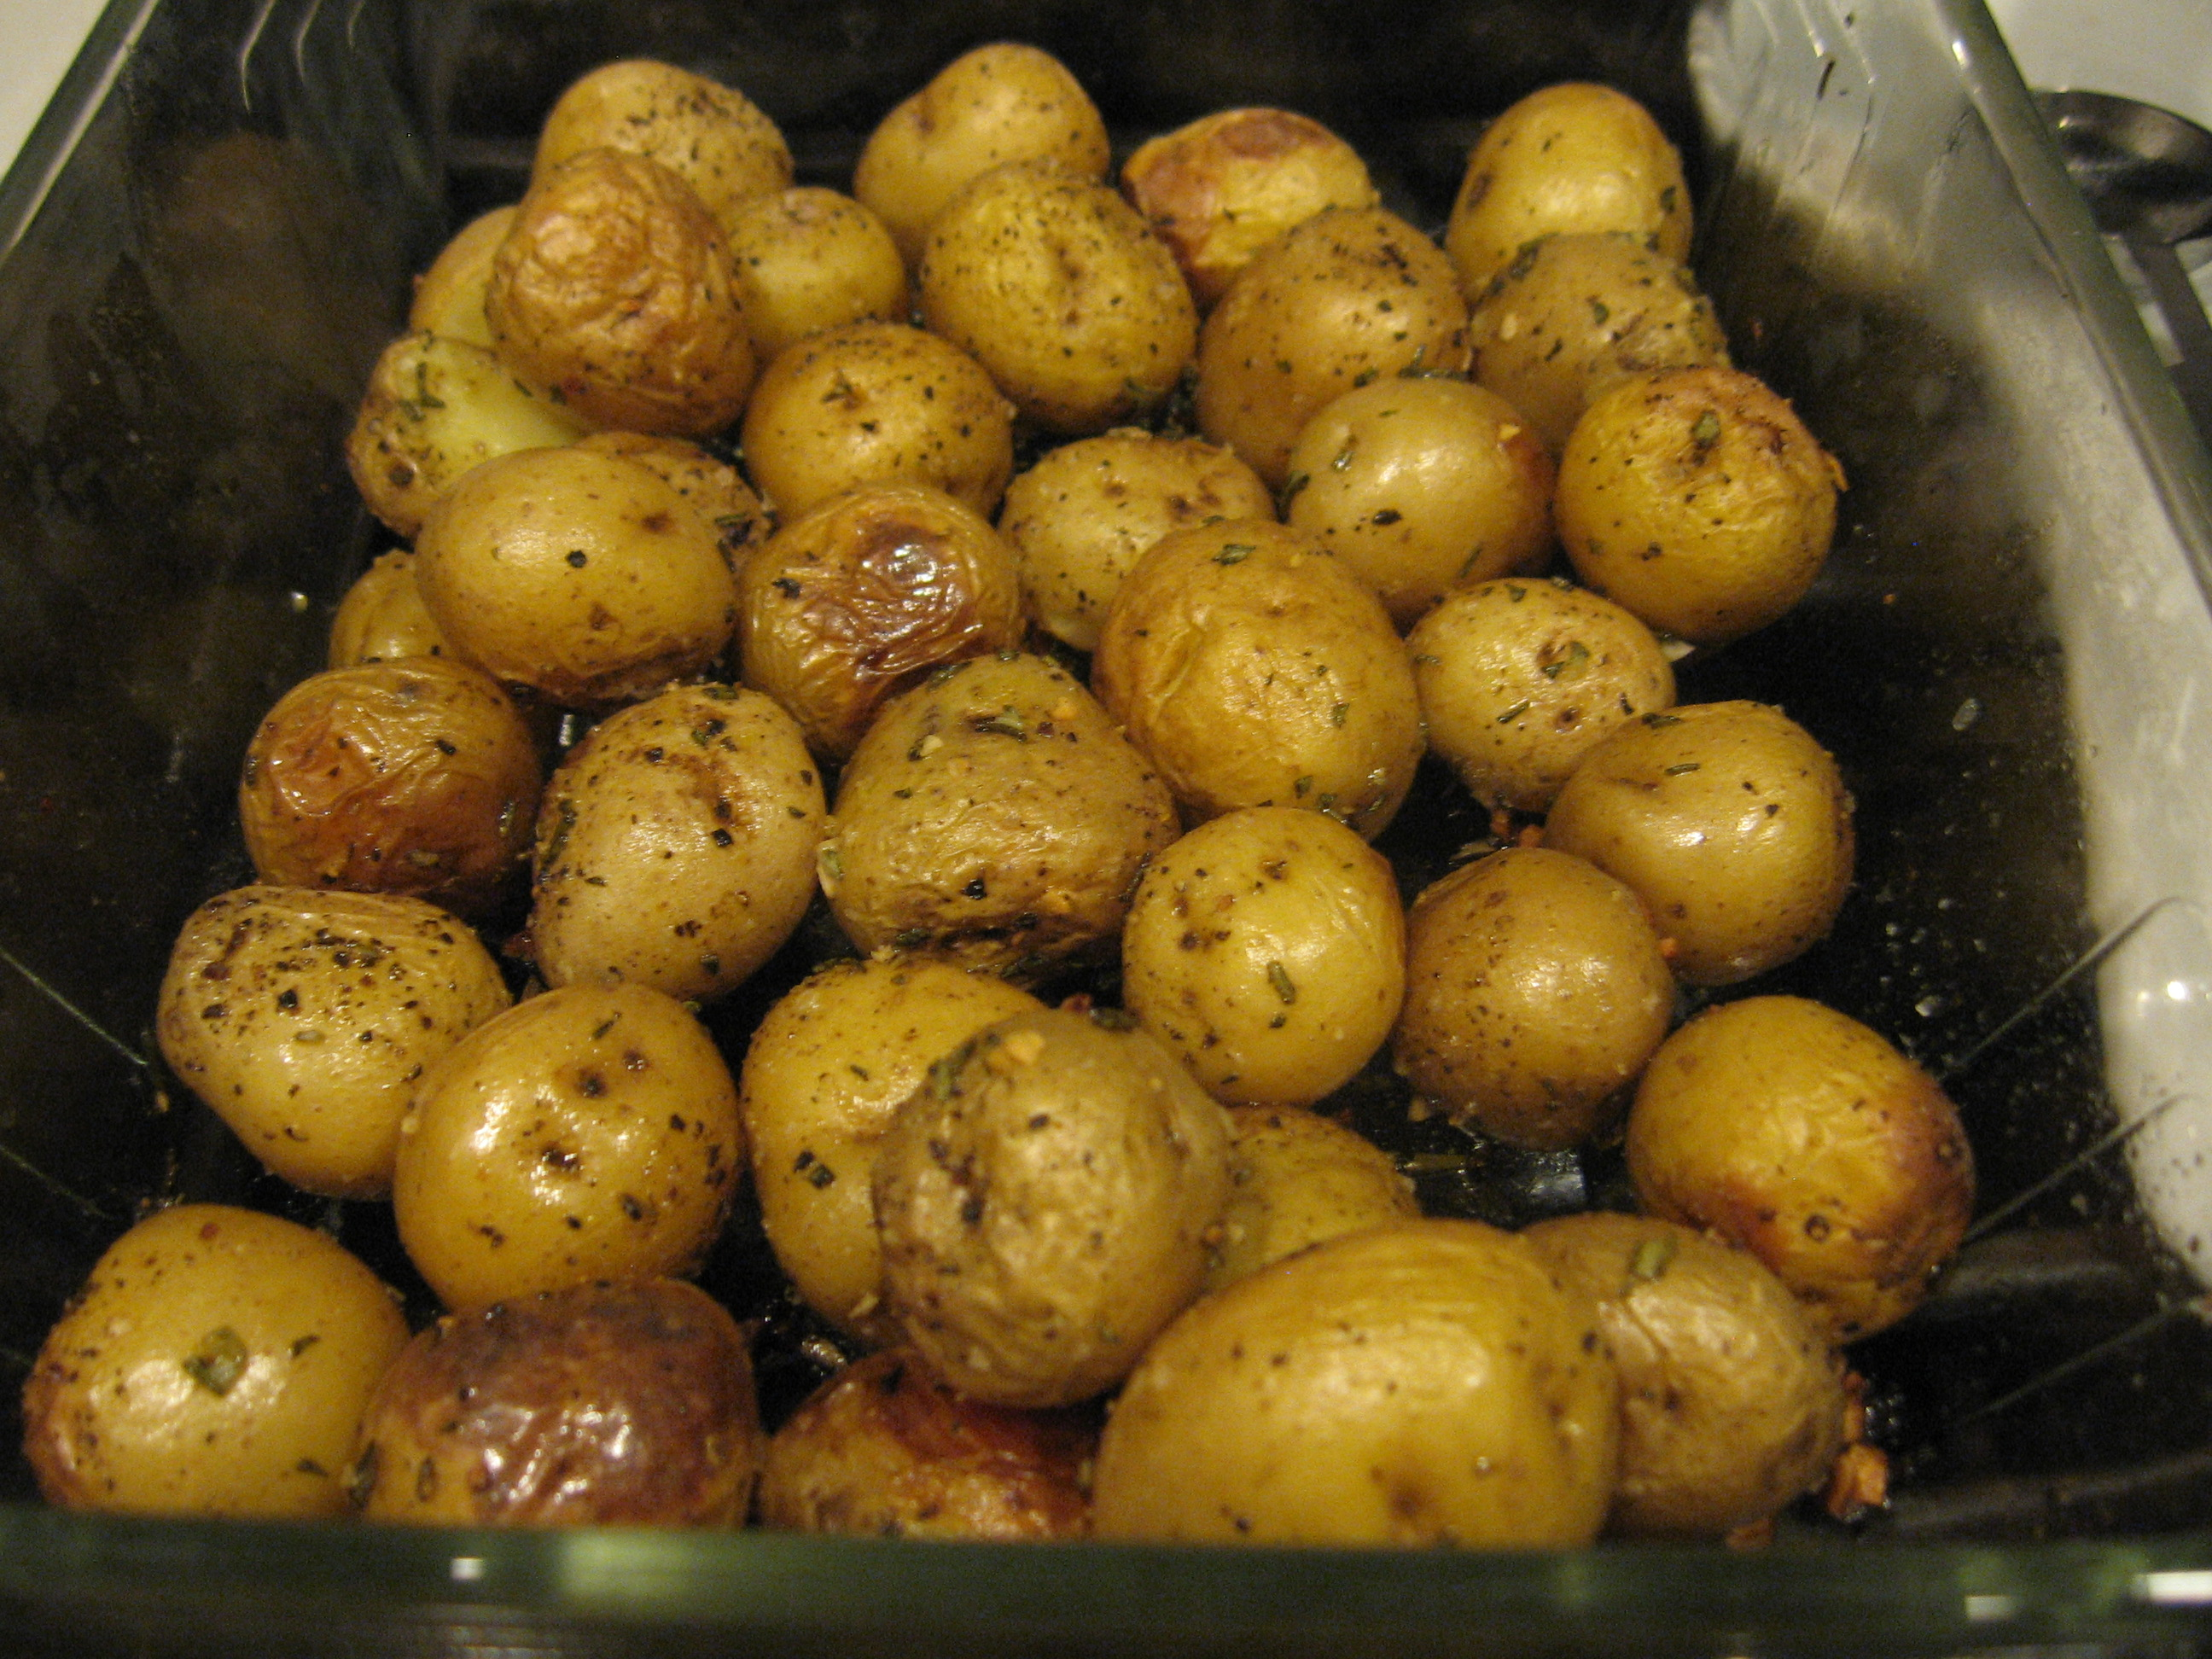 Roasted New Potatoes with Rosemary and Garlic